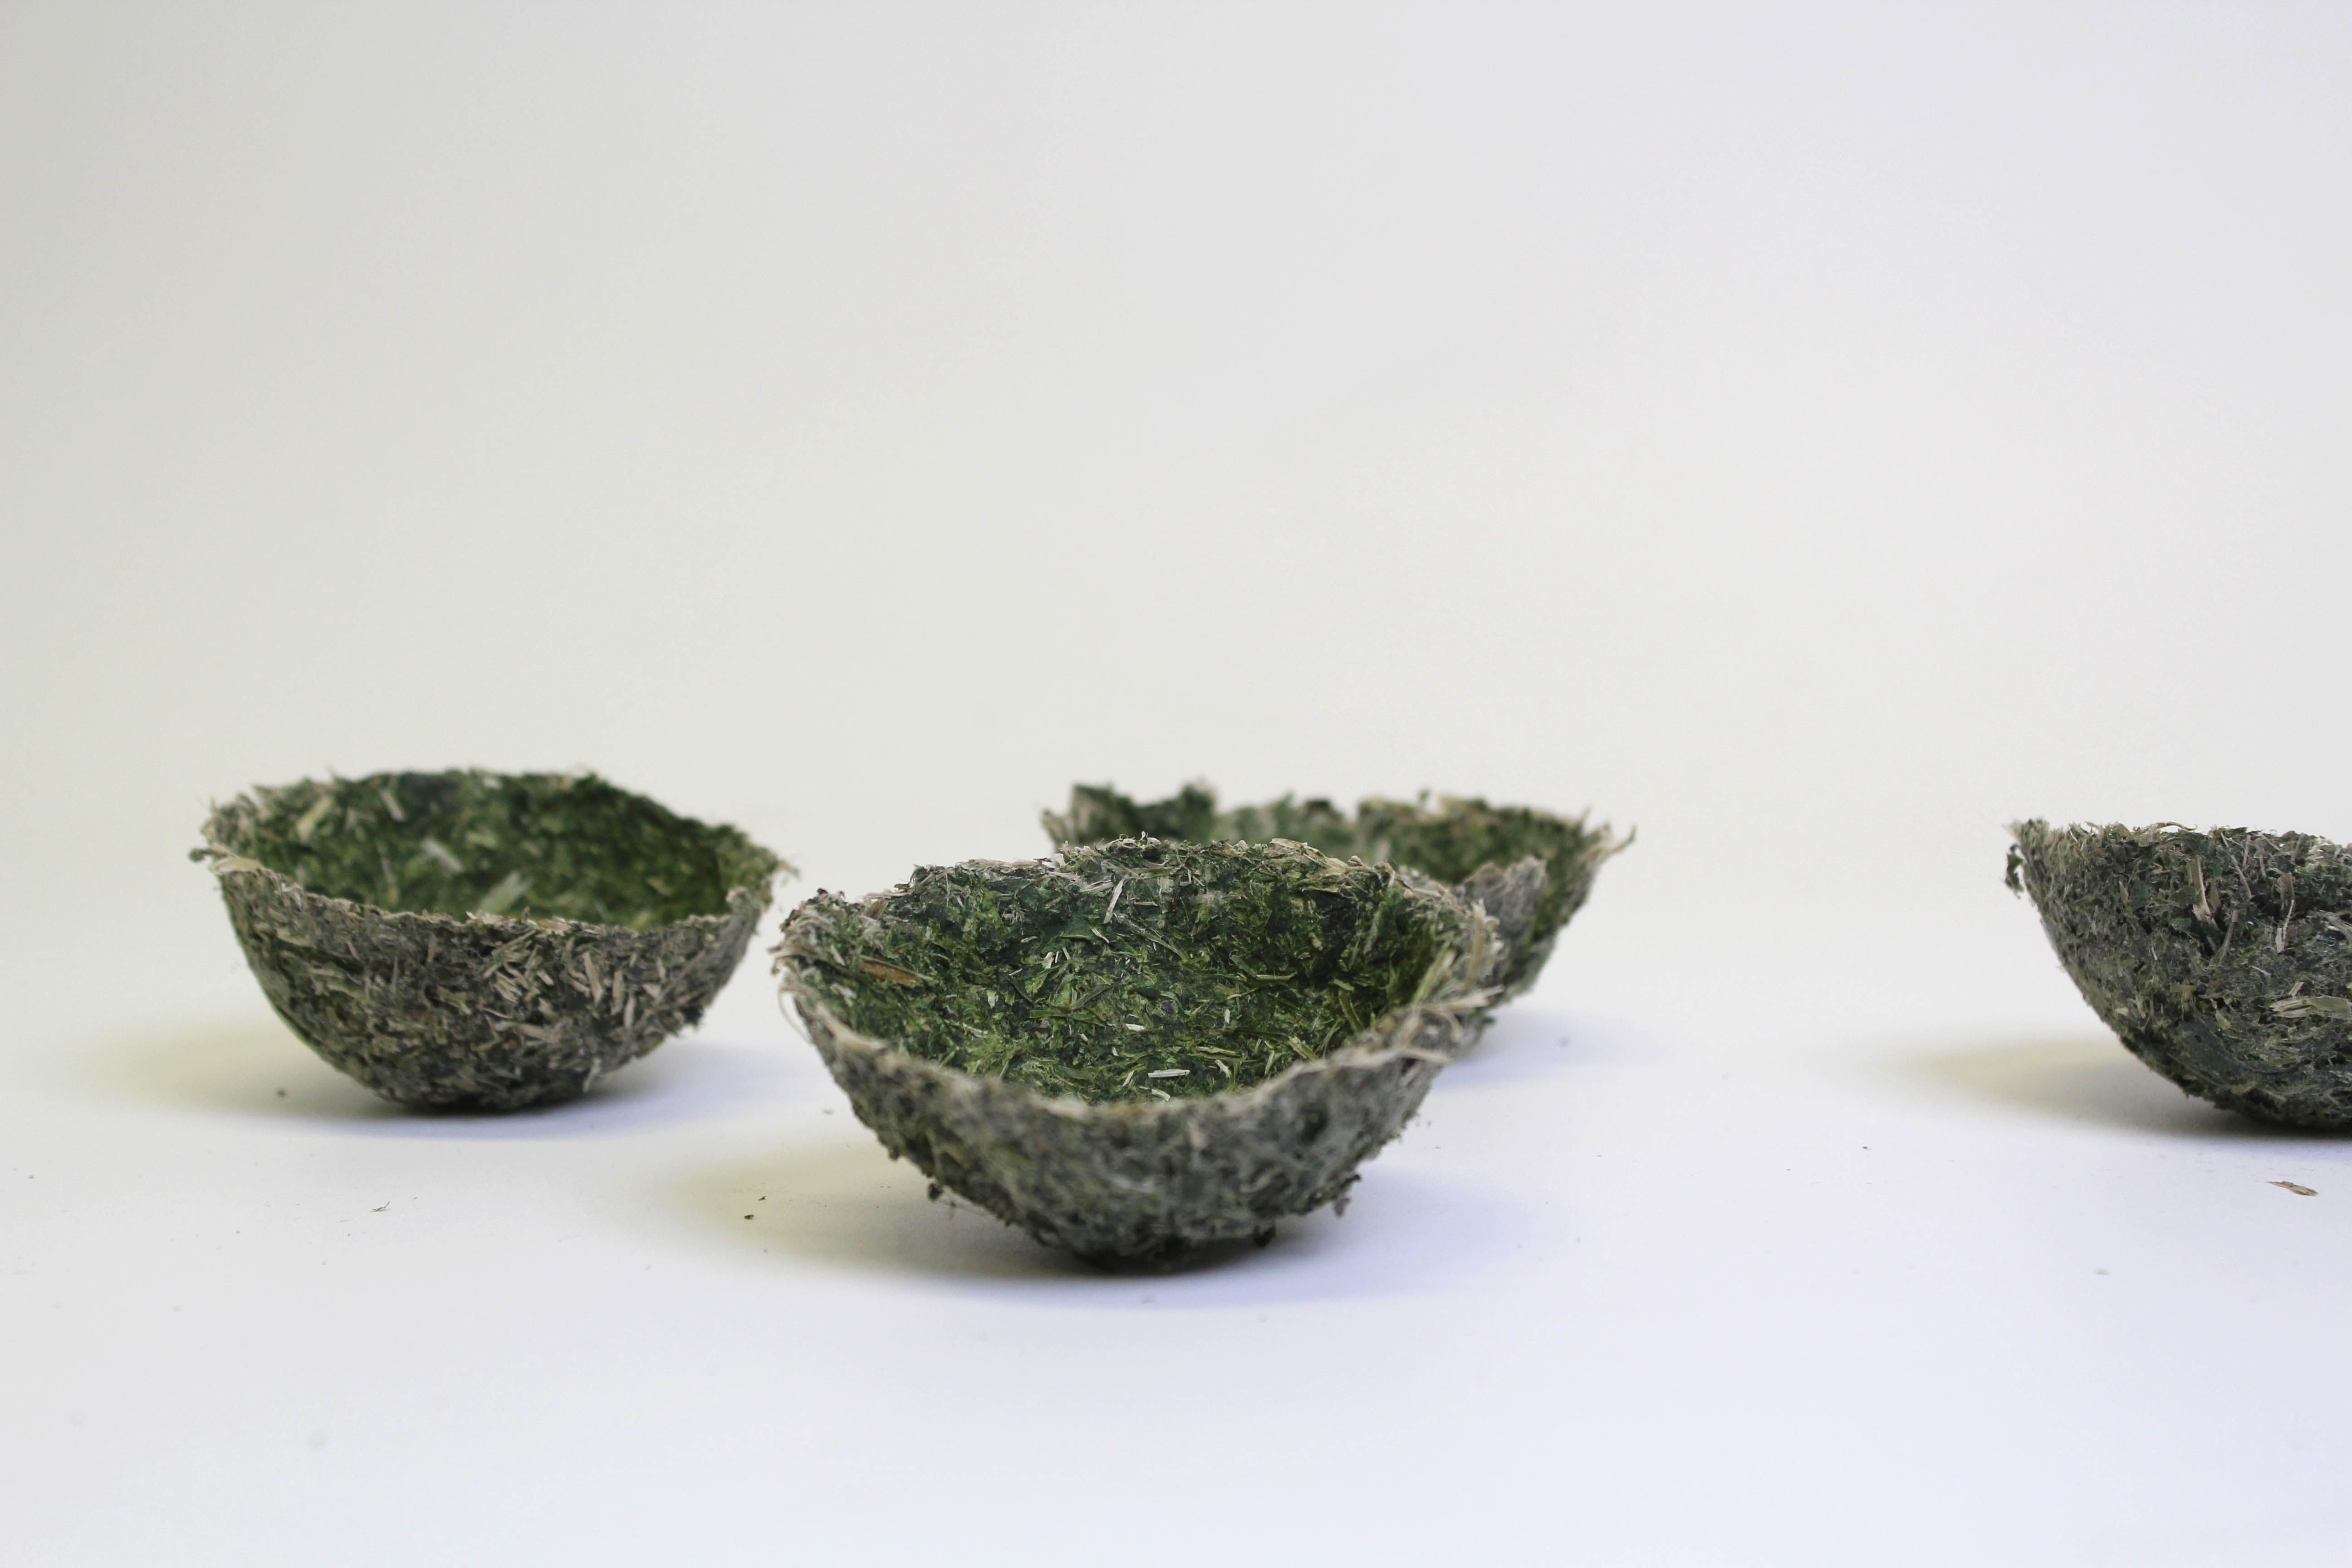 First vessel attempts